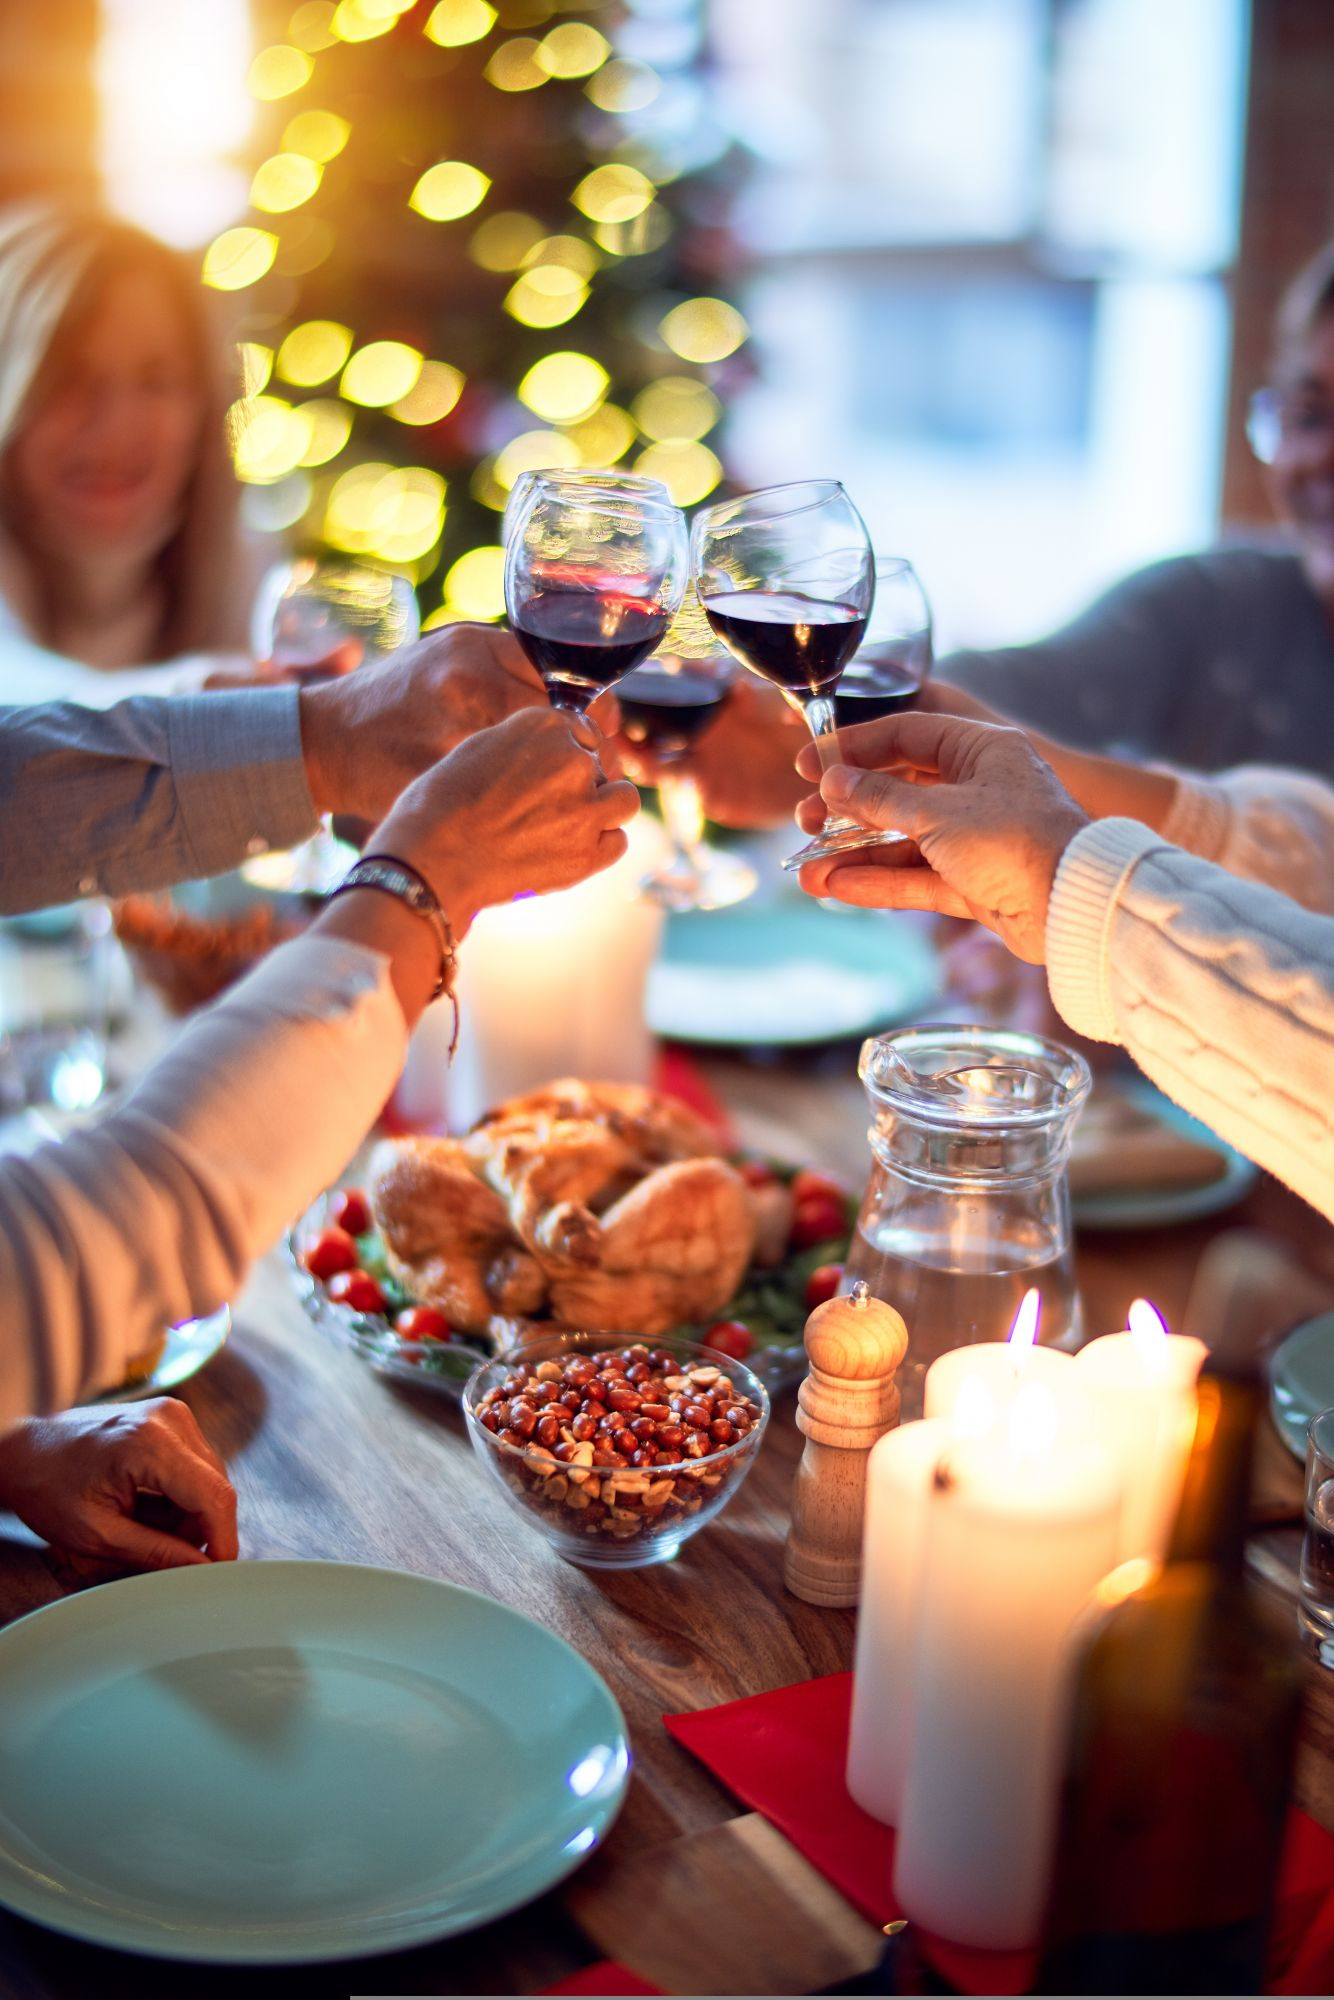 How To Create A Luxurious New Year's Eve Environment At Home